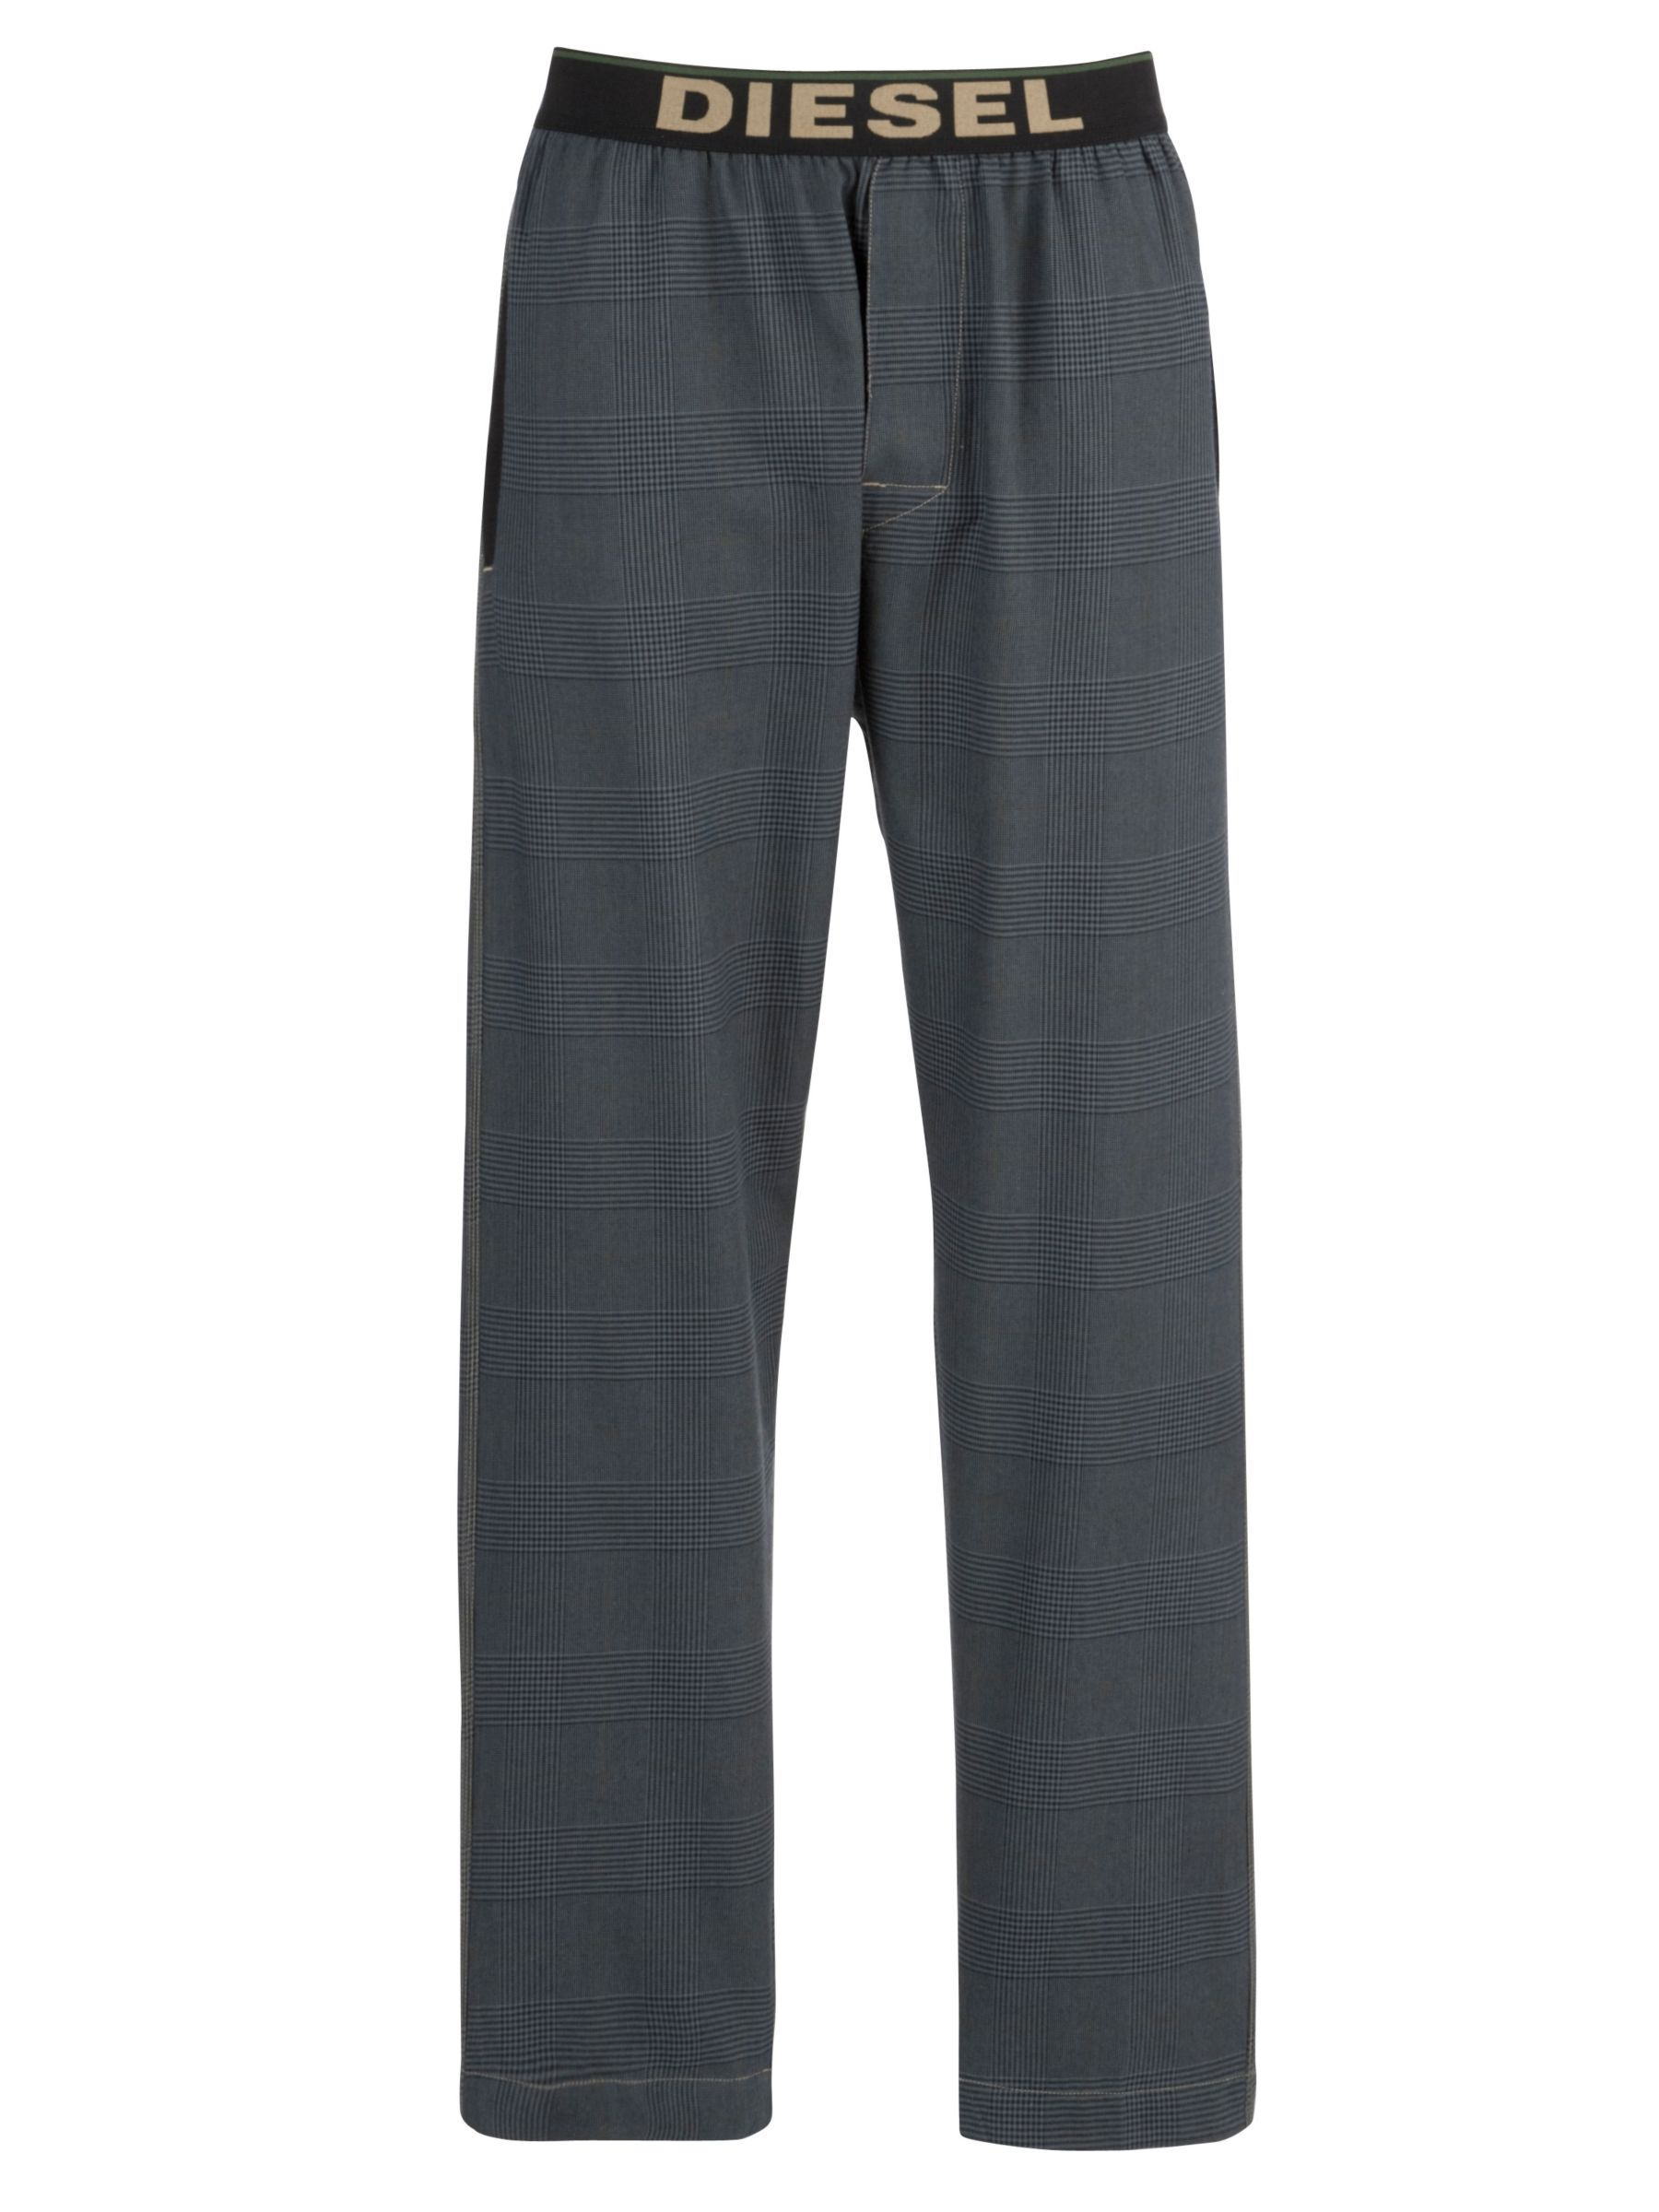 Diesel Micro Check Lounge Pants, Grey